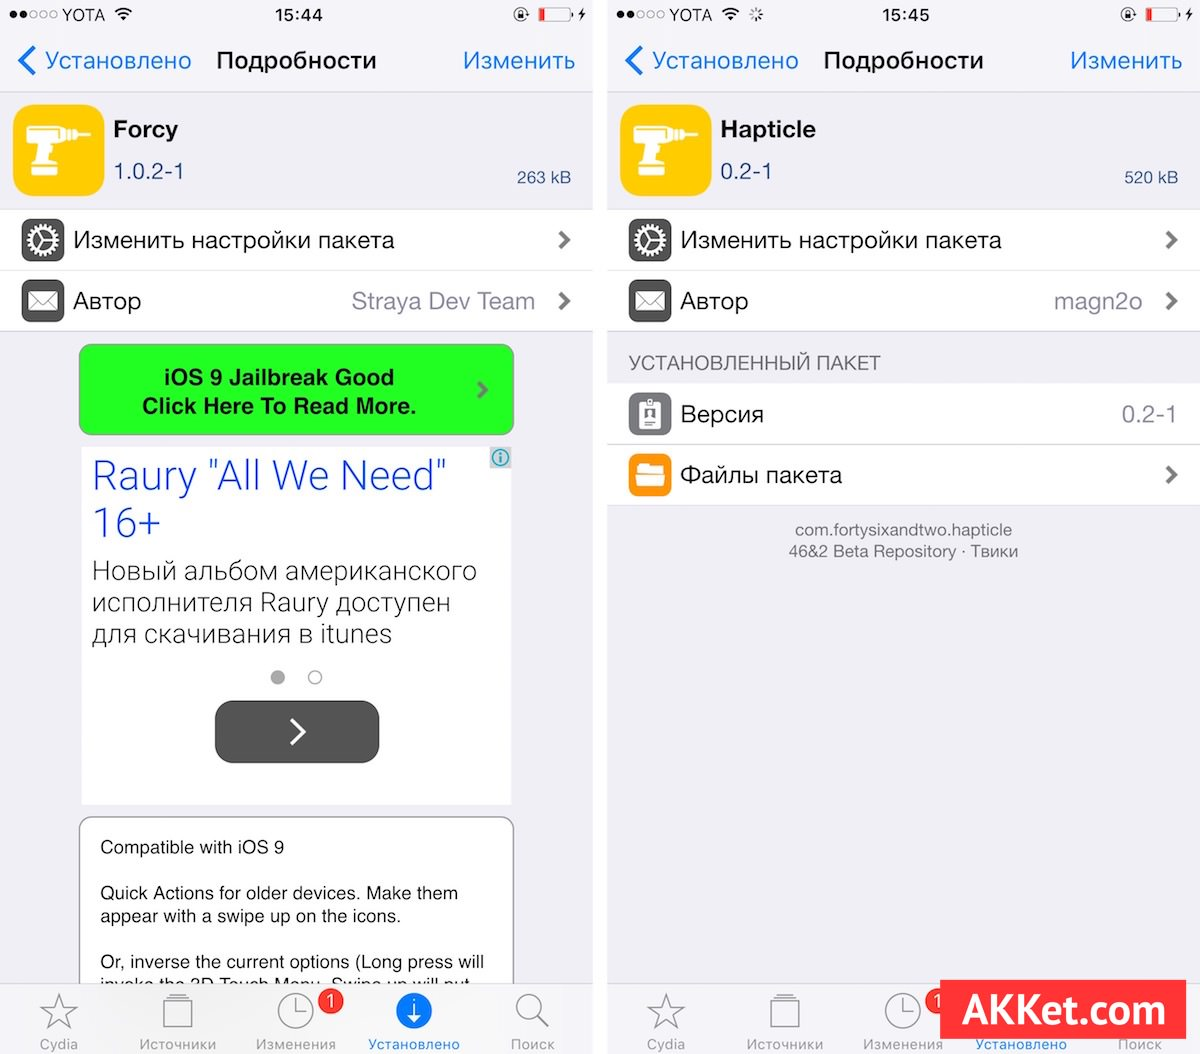 Forcy Hapticle iOS 9 Tweak Cydia Force Touch 3D Touch iPhone 6 Plus Apple 2